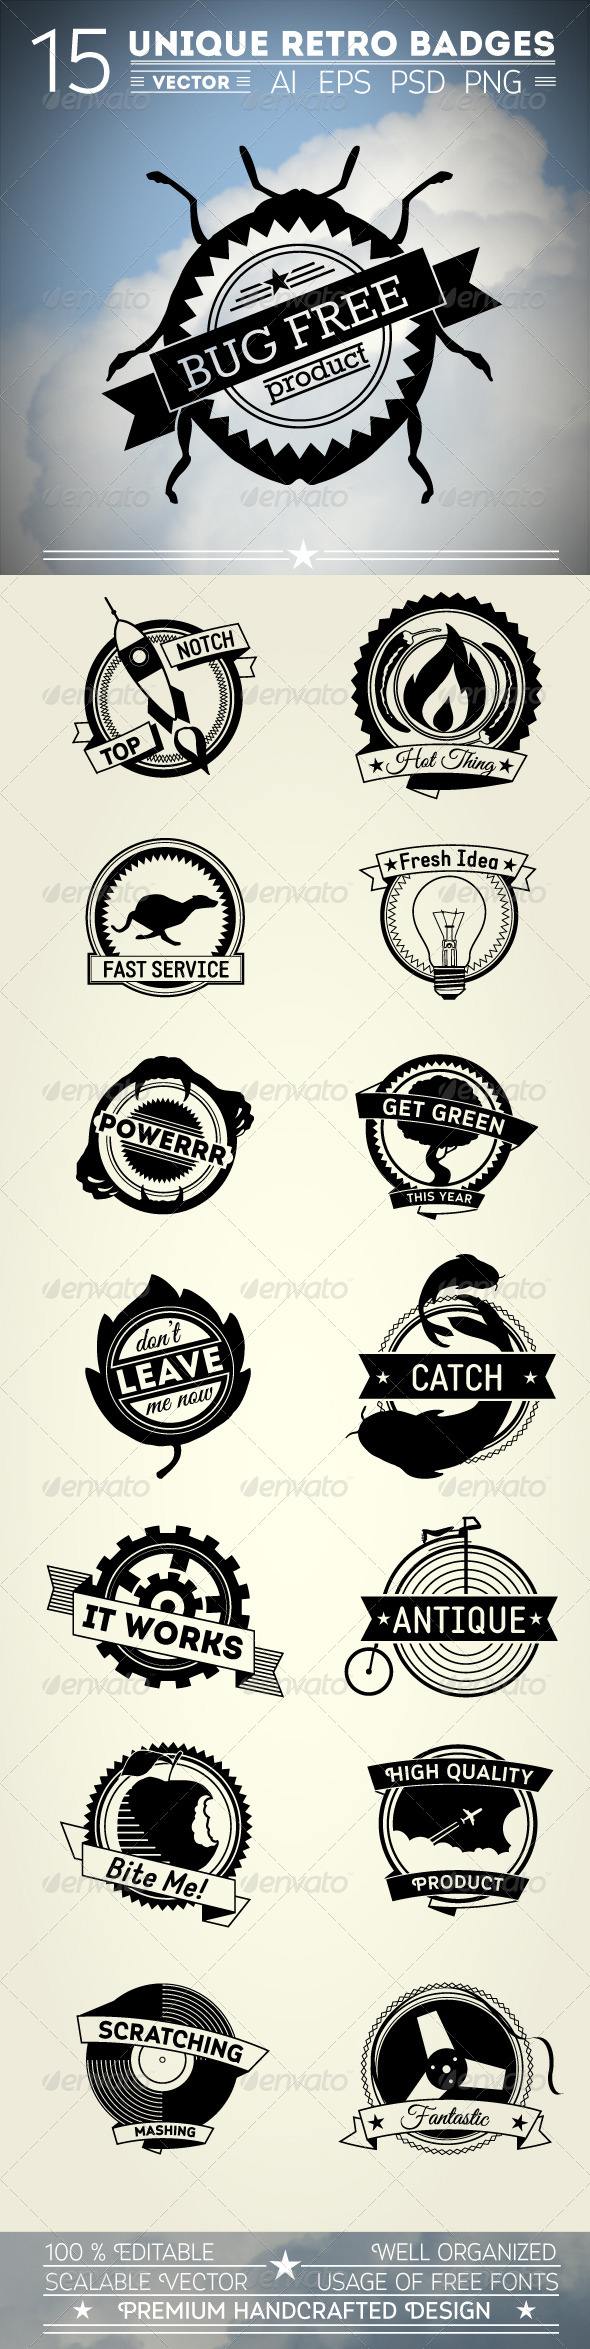 15 Unique Retro Badges - Retro Technology